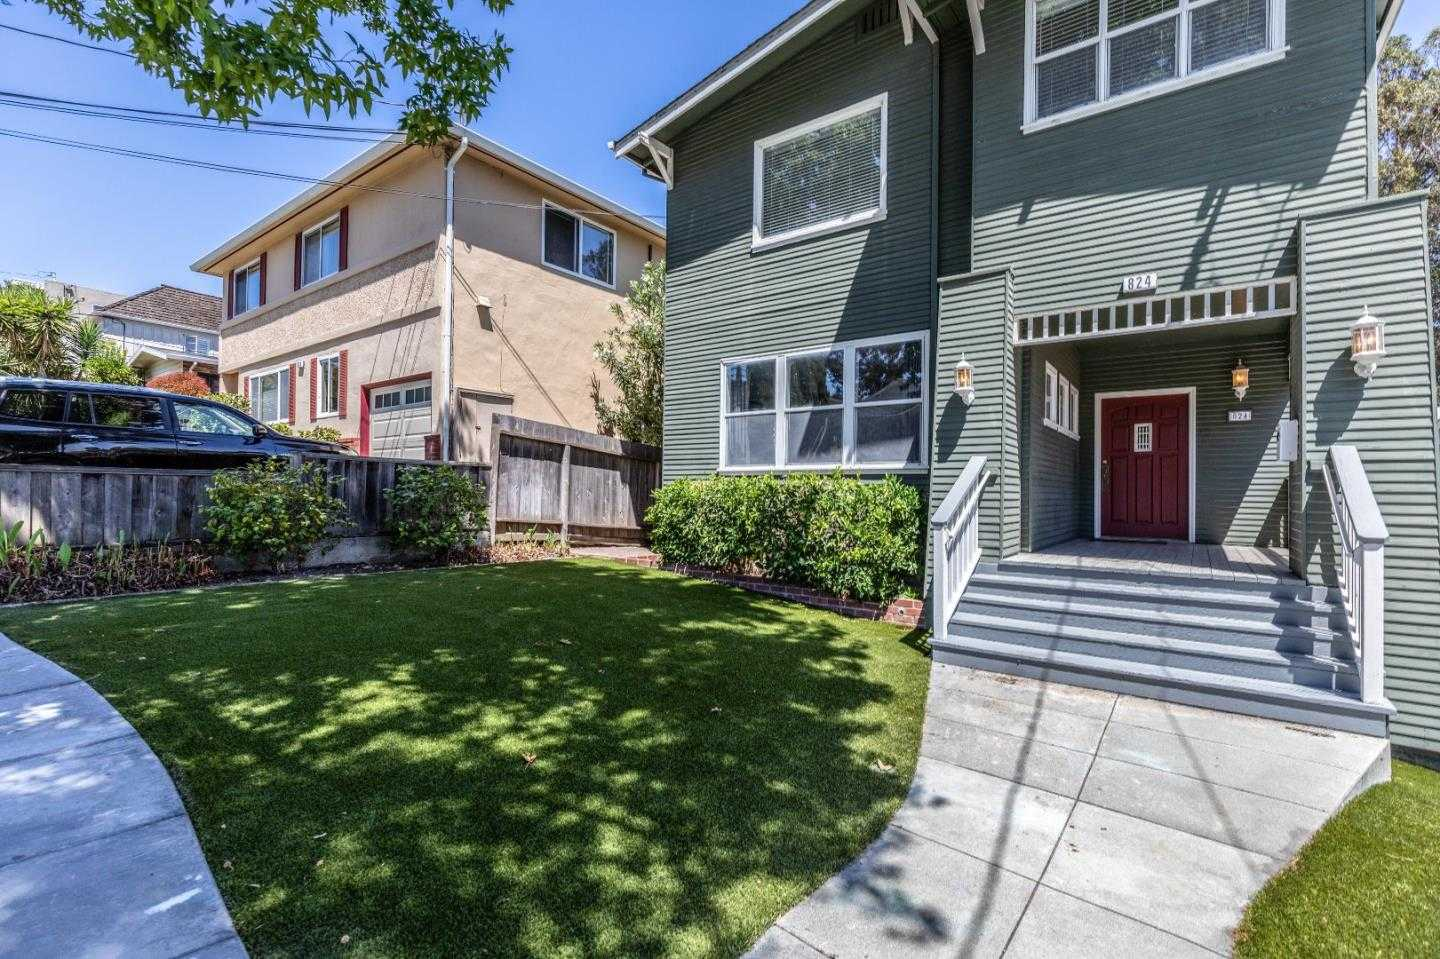 $2,495,000 - 4Br/3Ba -  for Sale in Burlingame